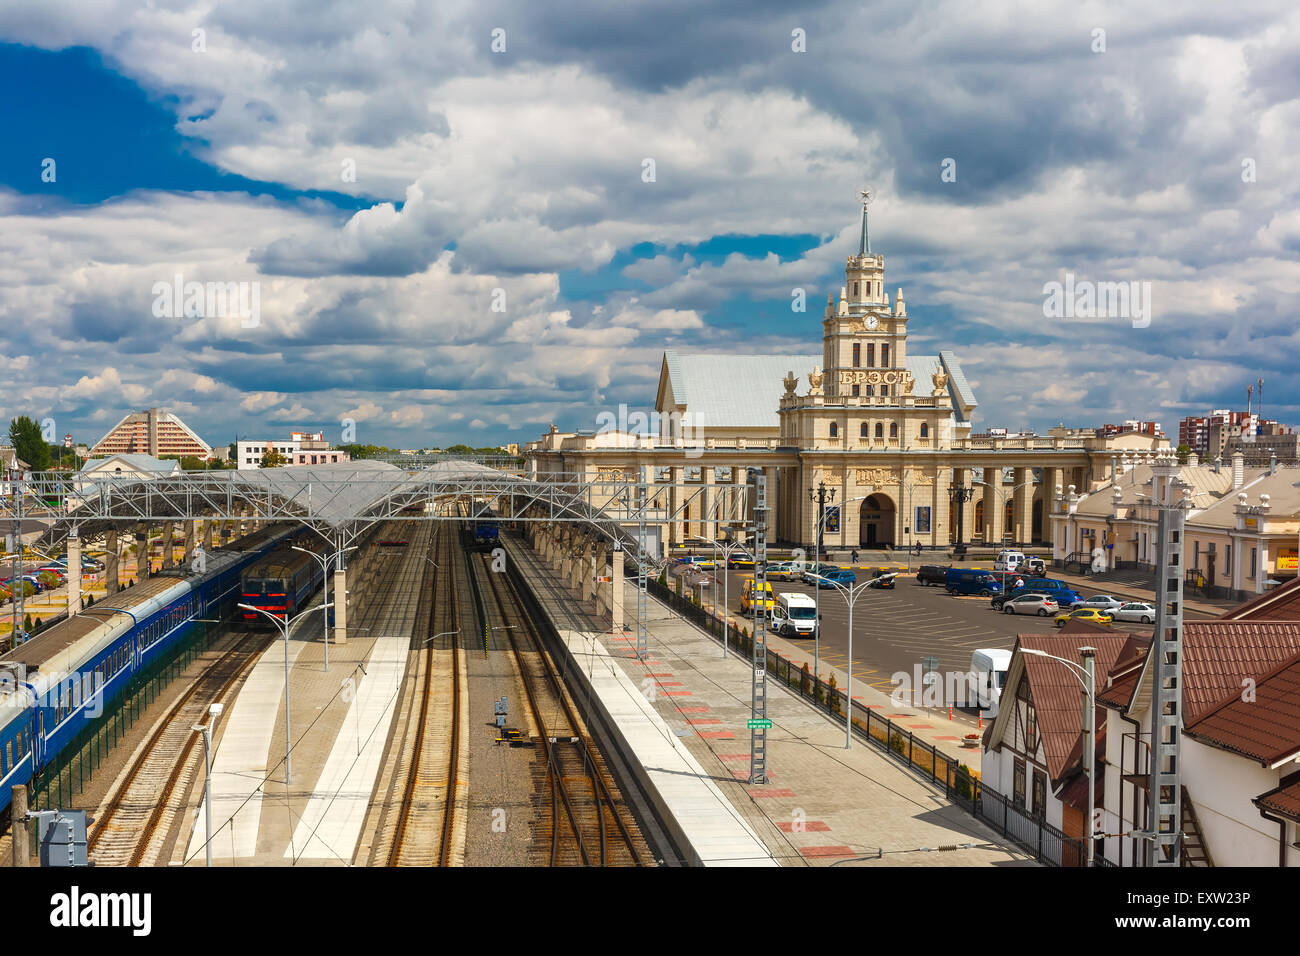 The railway station Brest - Stock Image